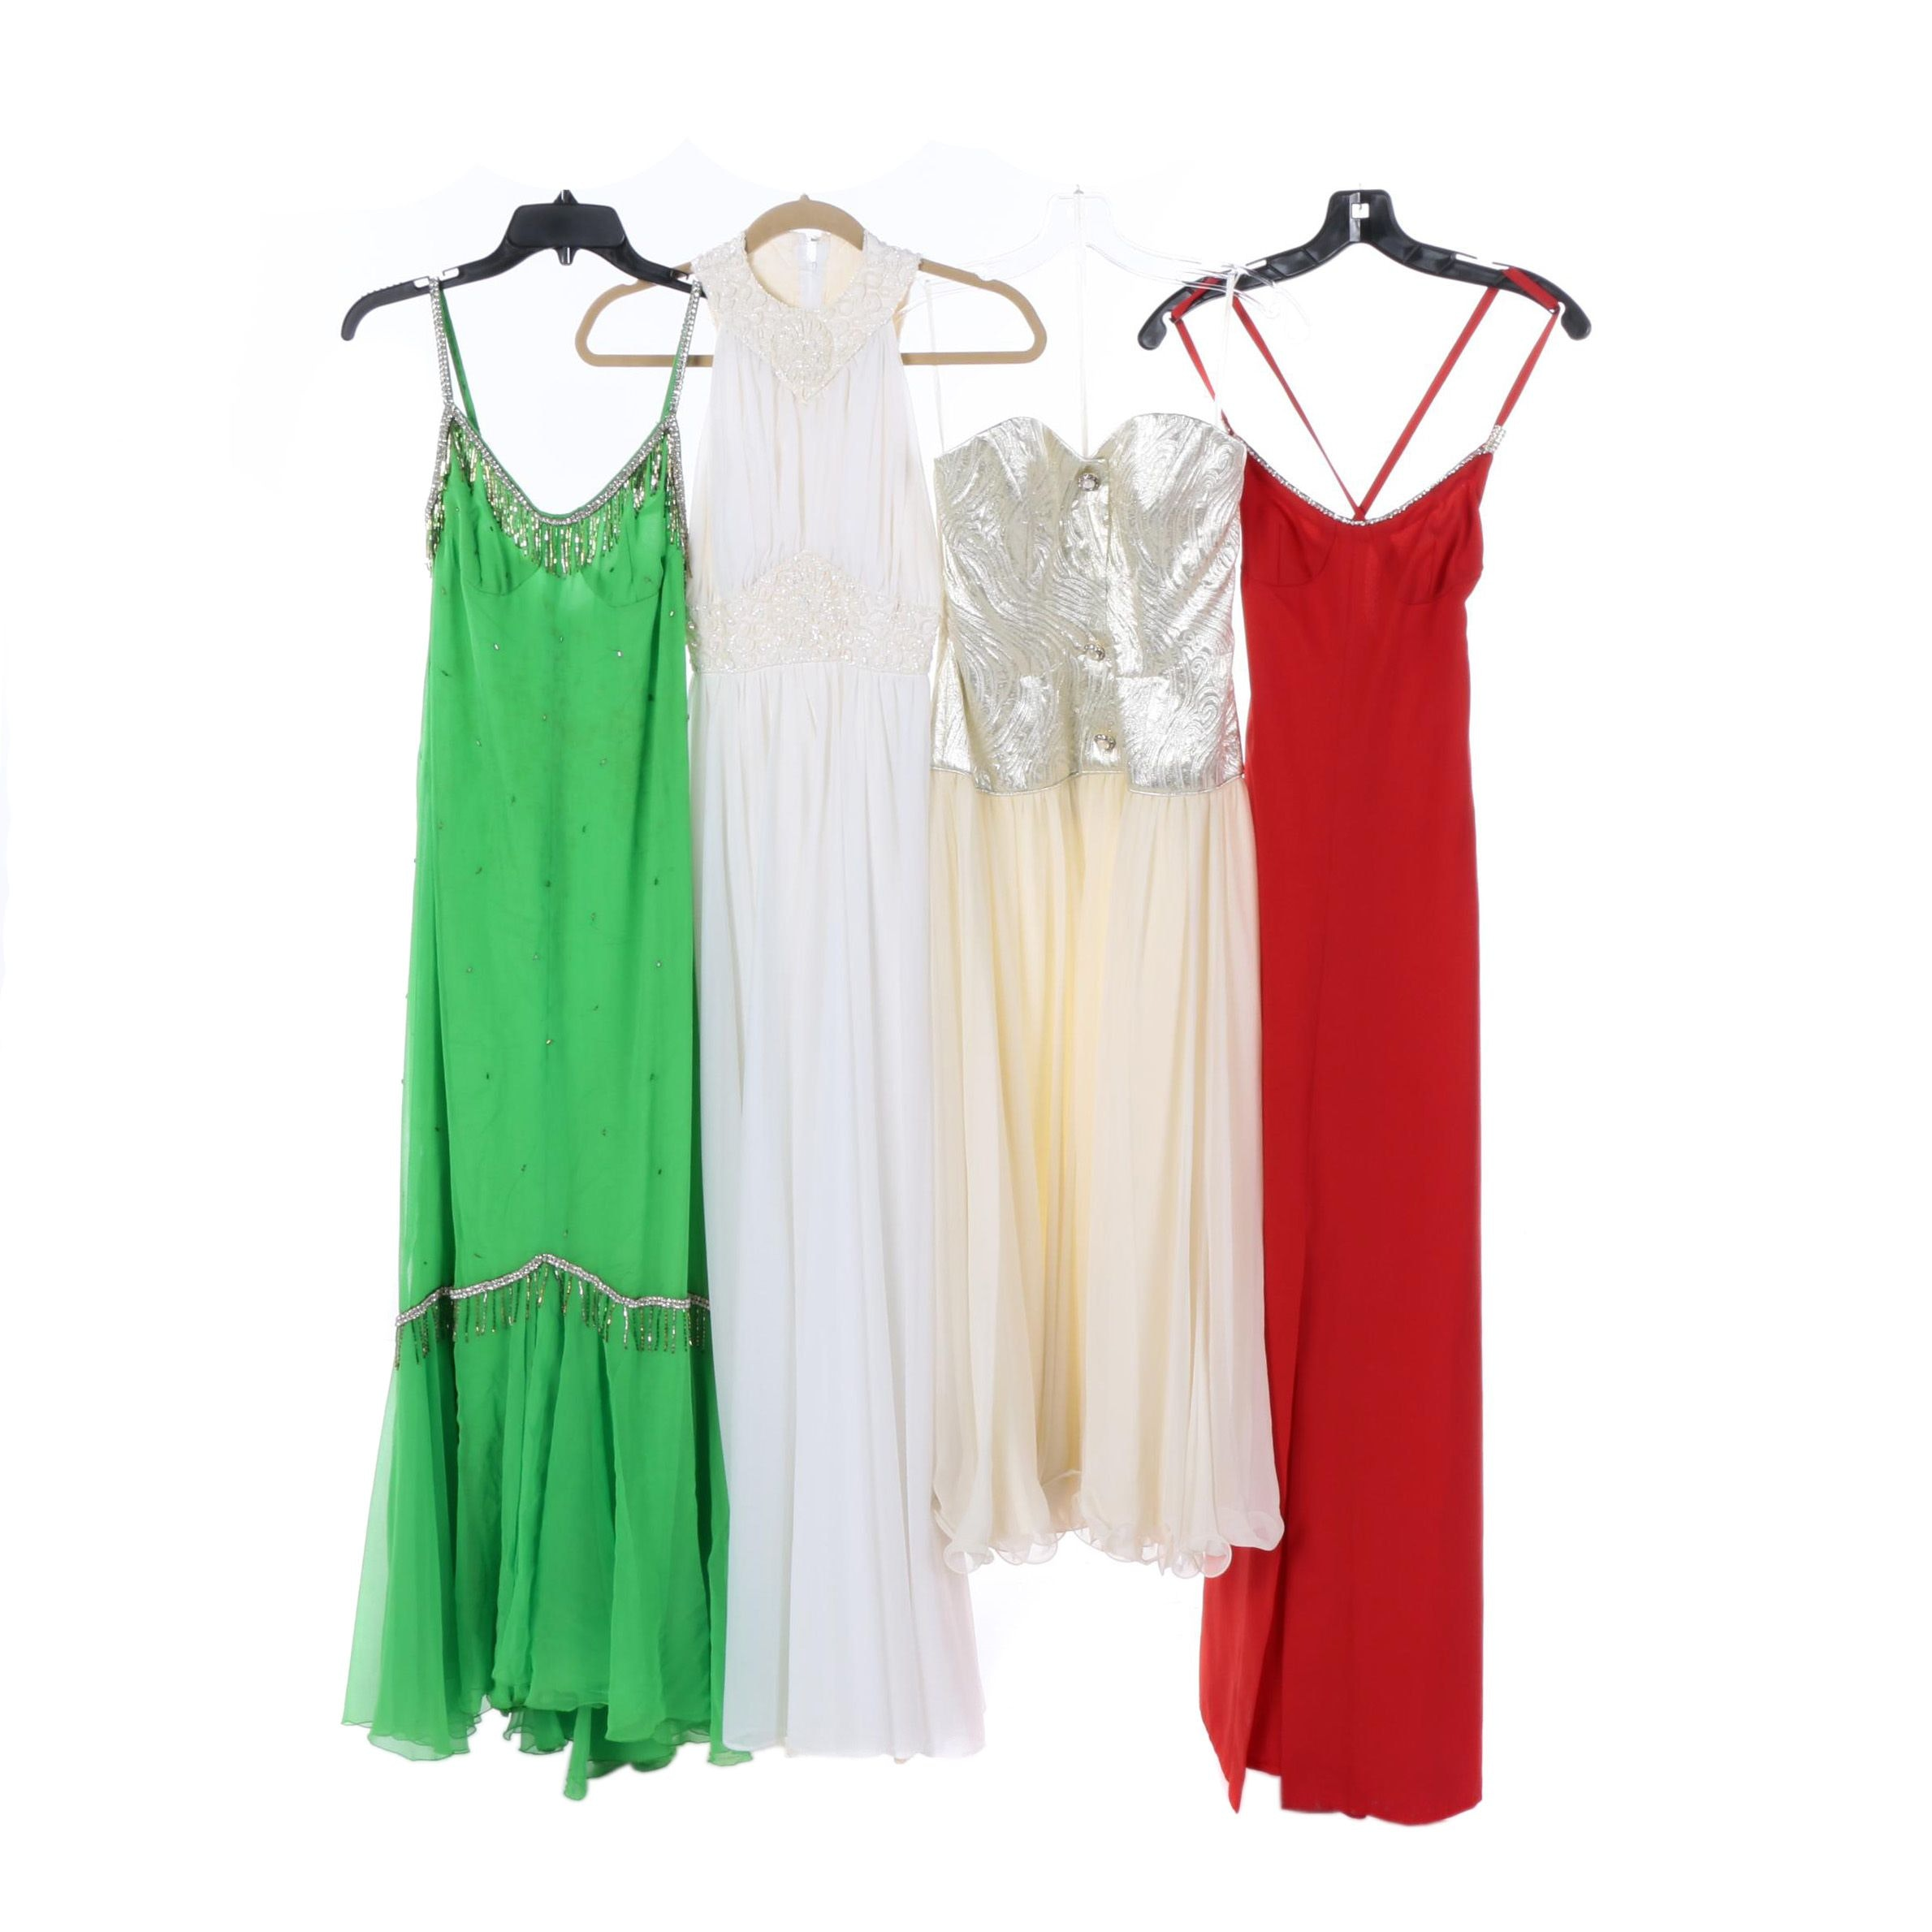 Vintage and Contemporary Embellished Evening Gowns